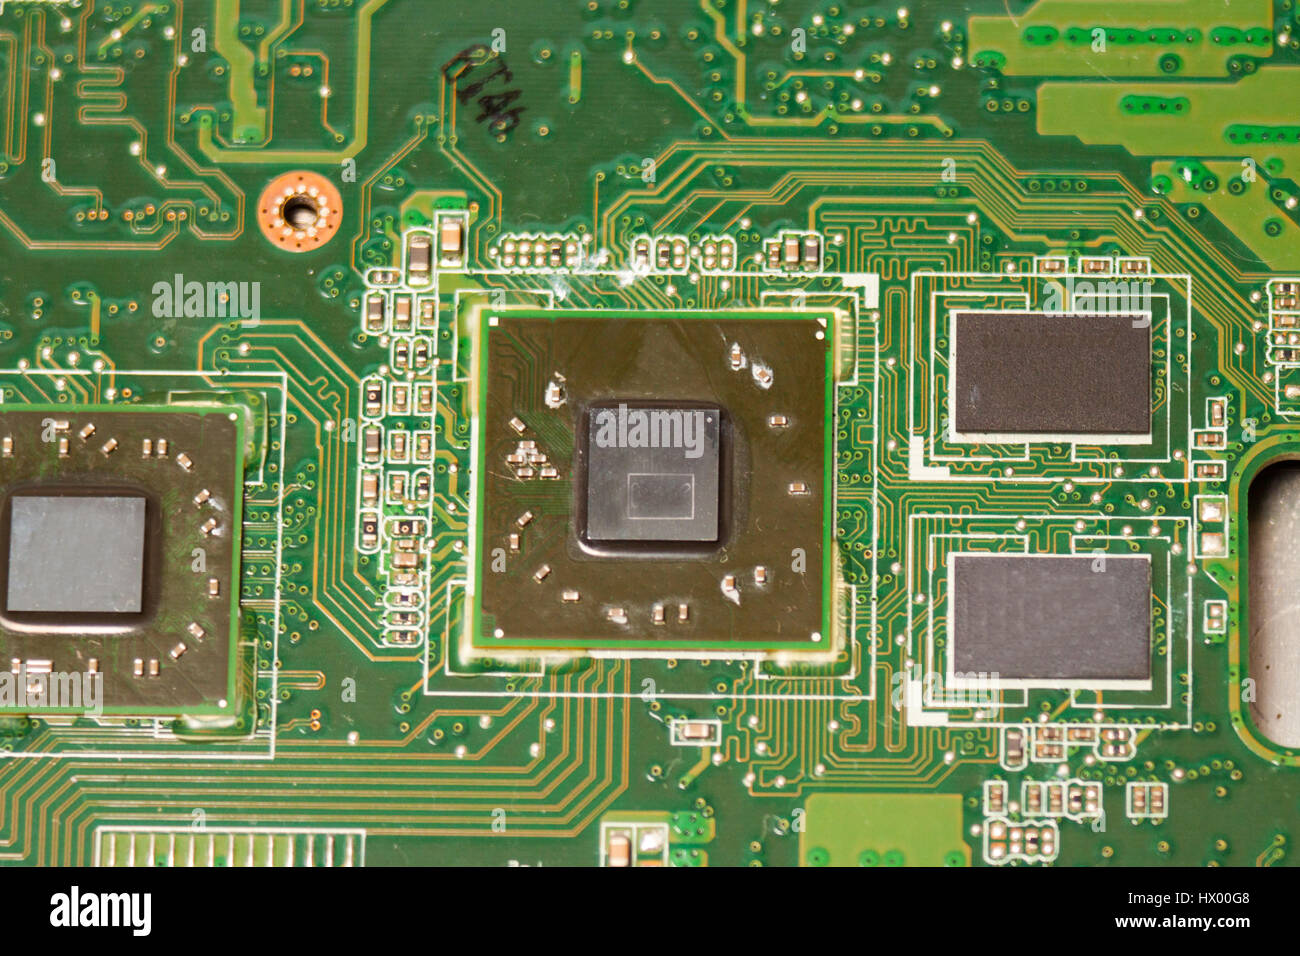 Micro Scheme Stock Photos Images Alamy Electric Circuit Board Processor Tshirt Close Up Of Electronic With Chips And Processors Motherboard Laptop Computer